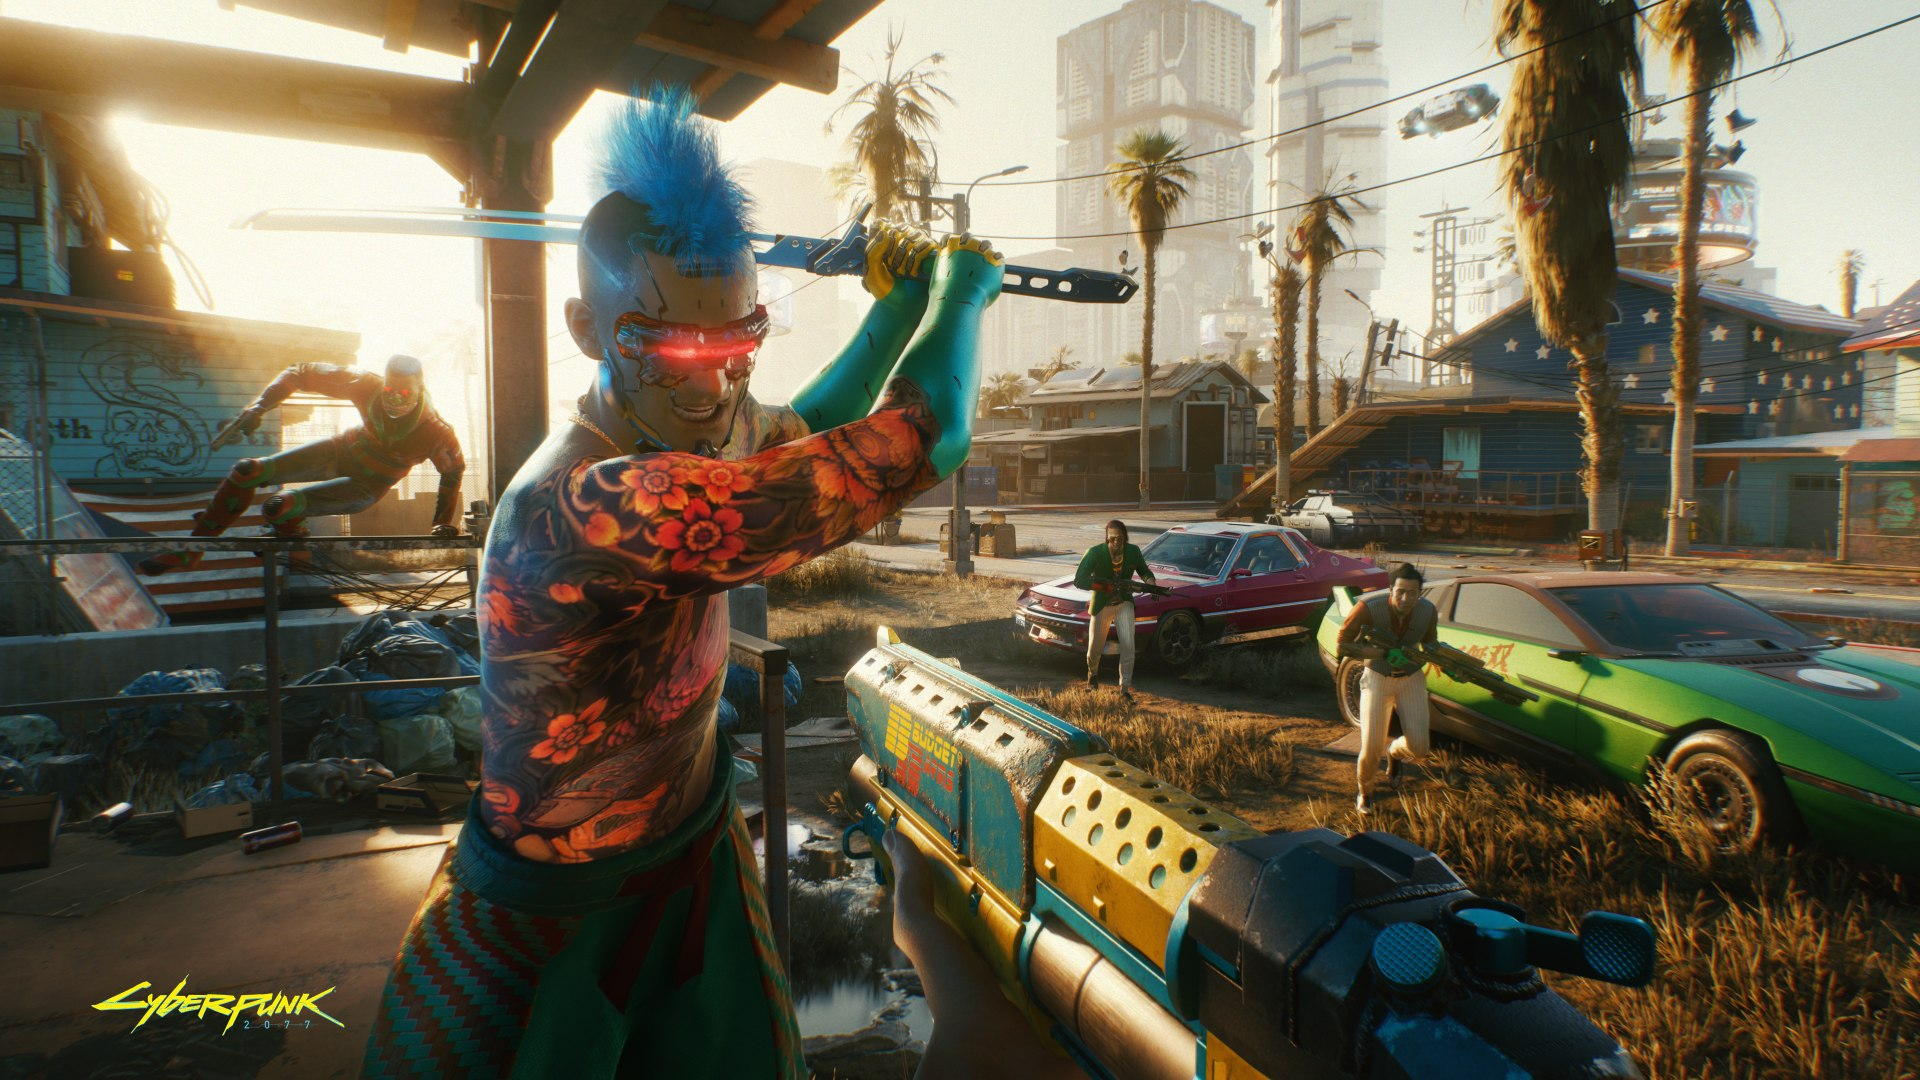 Cyberpunk 2077 has been delayed to December 10th